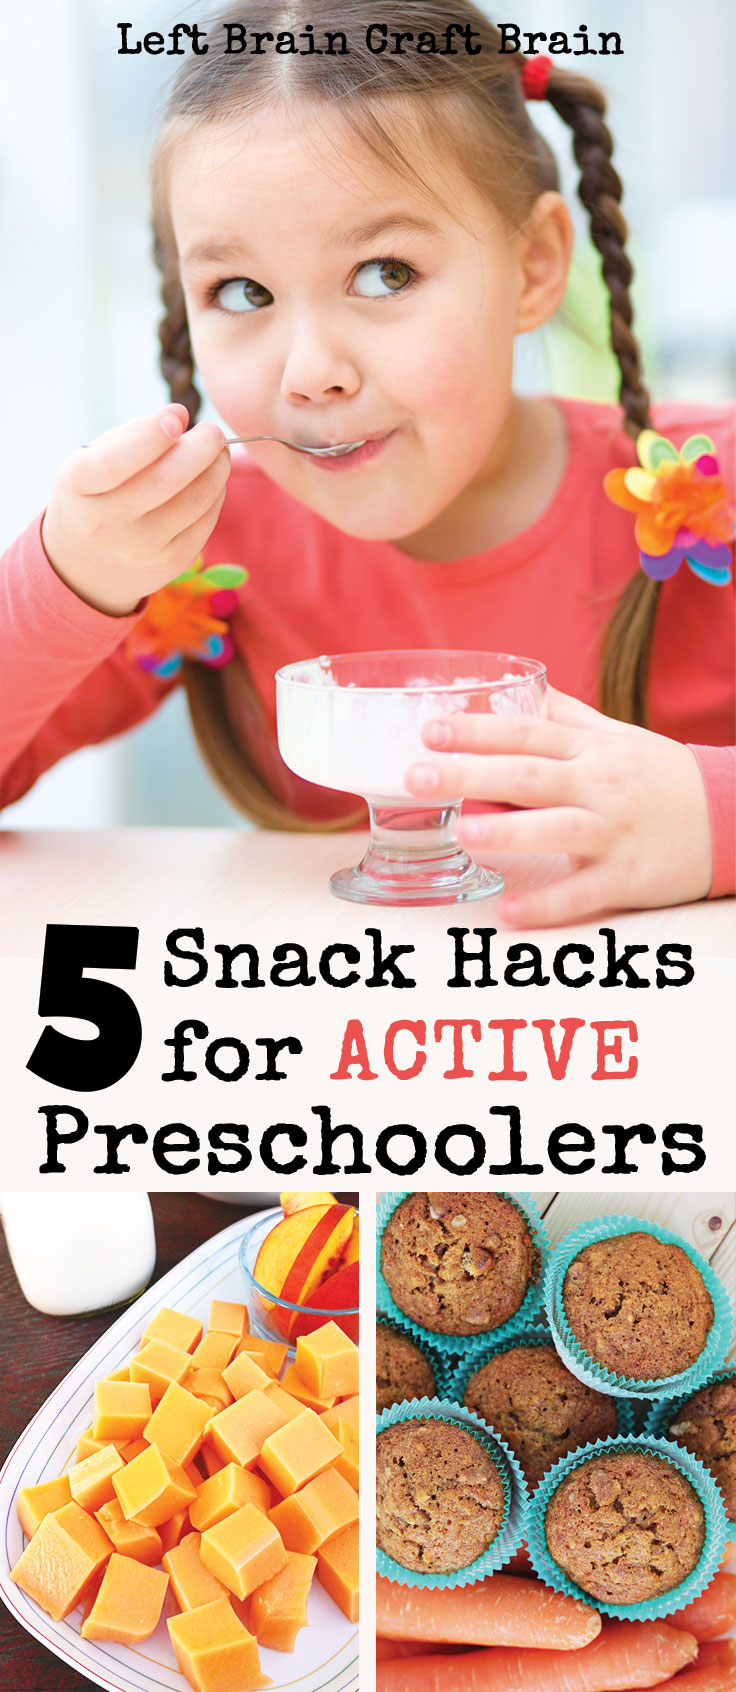 5-Easy-Snack-Hacks-For-Active-Preschoolers-Left-Brain-Craft-Brain-2